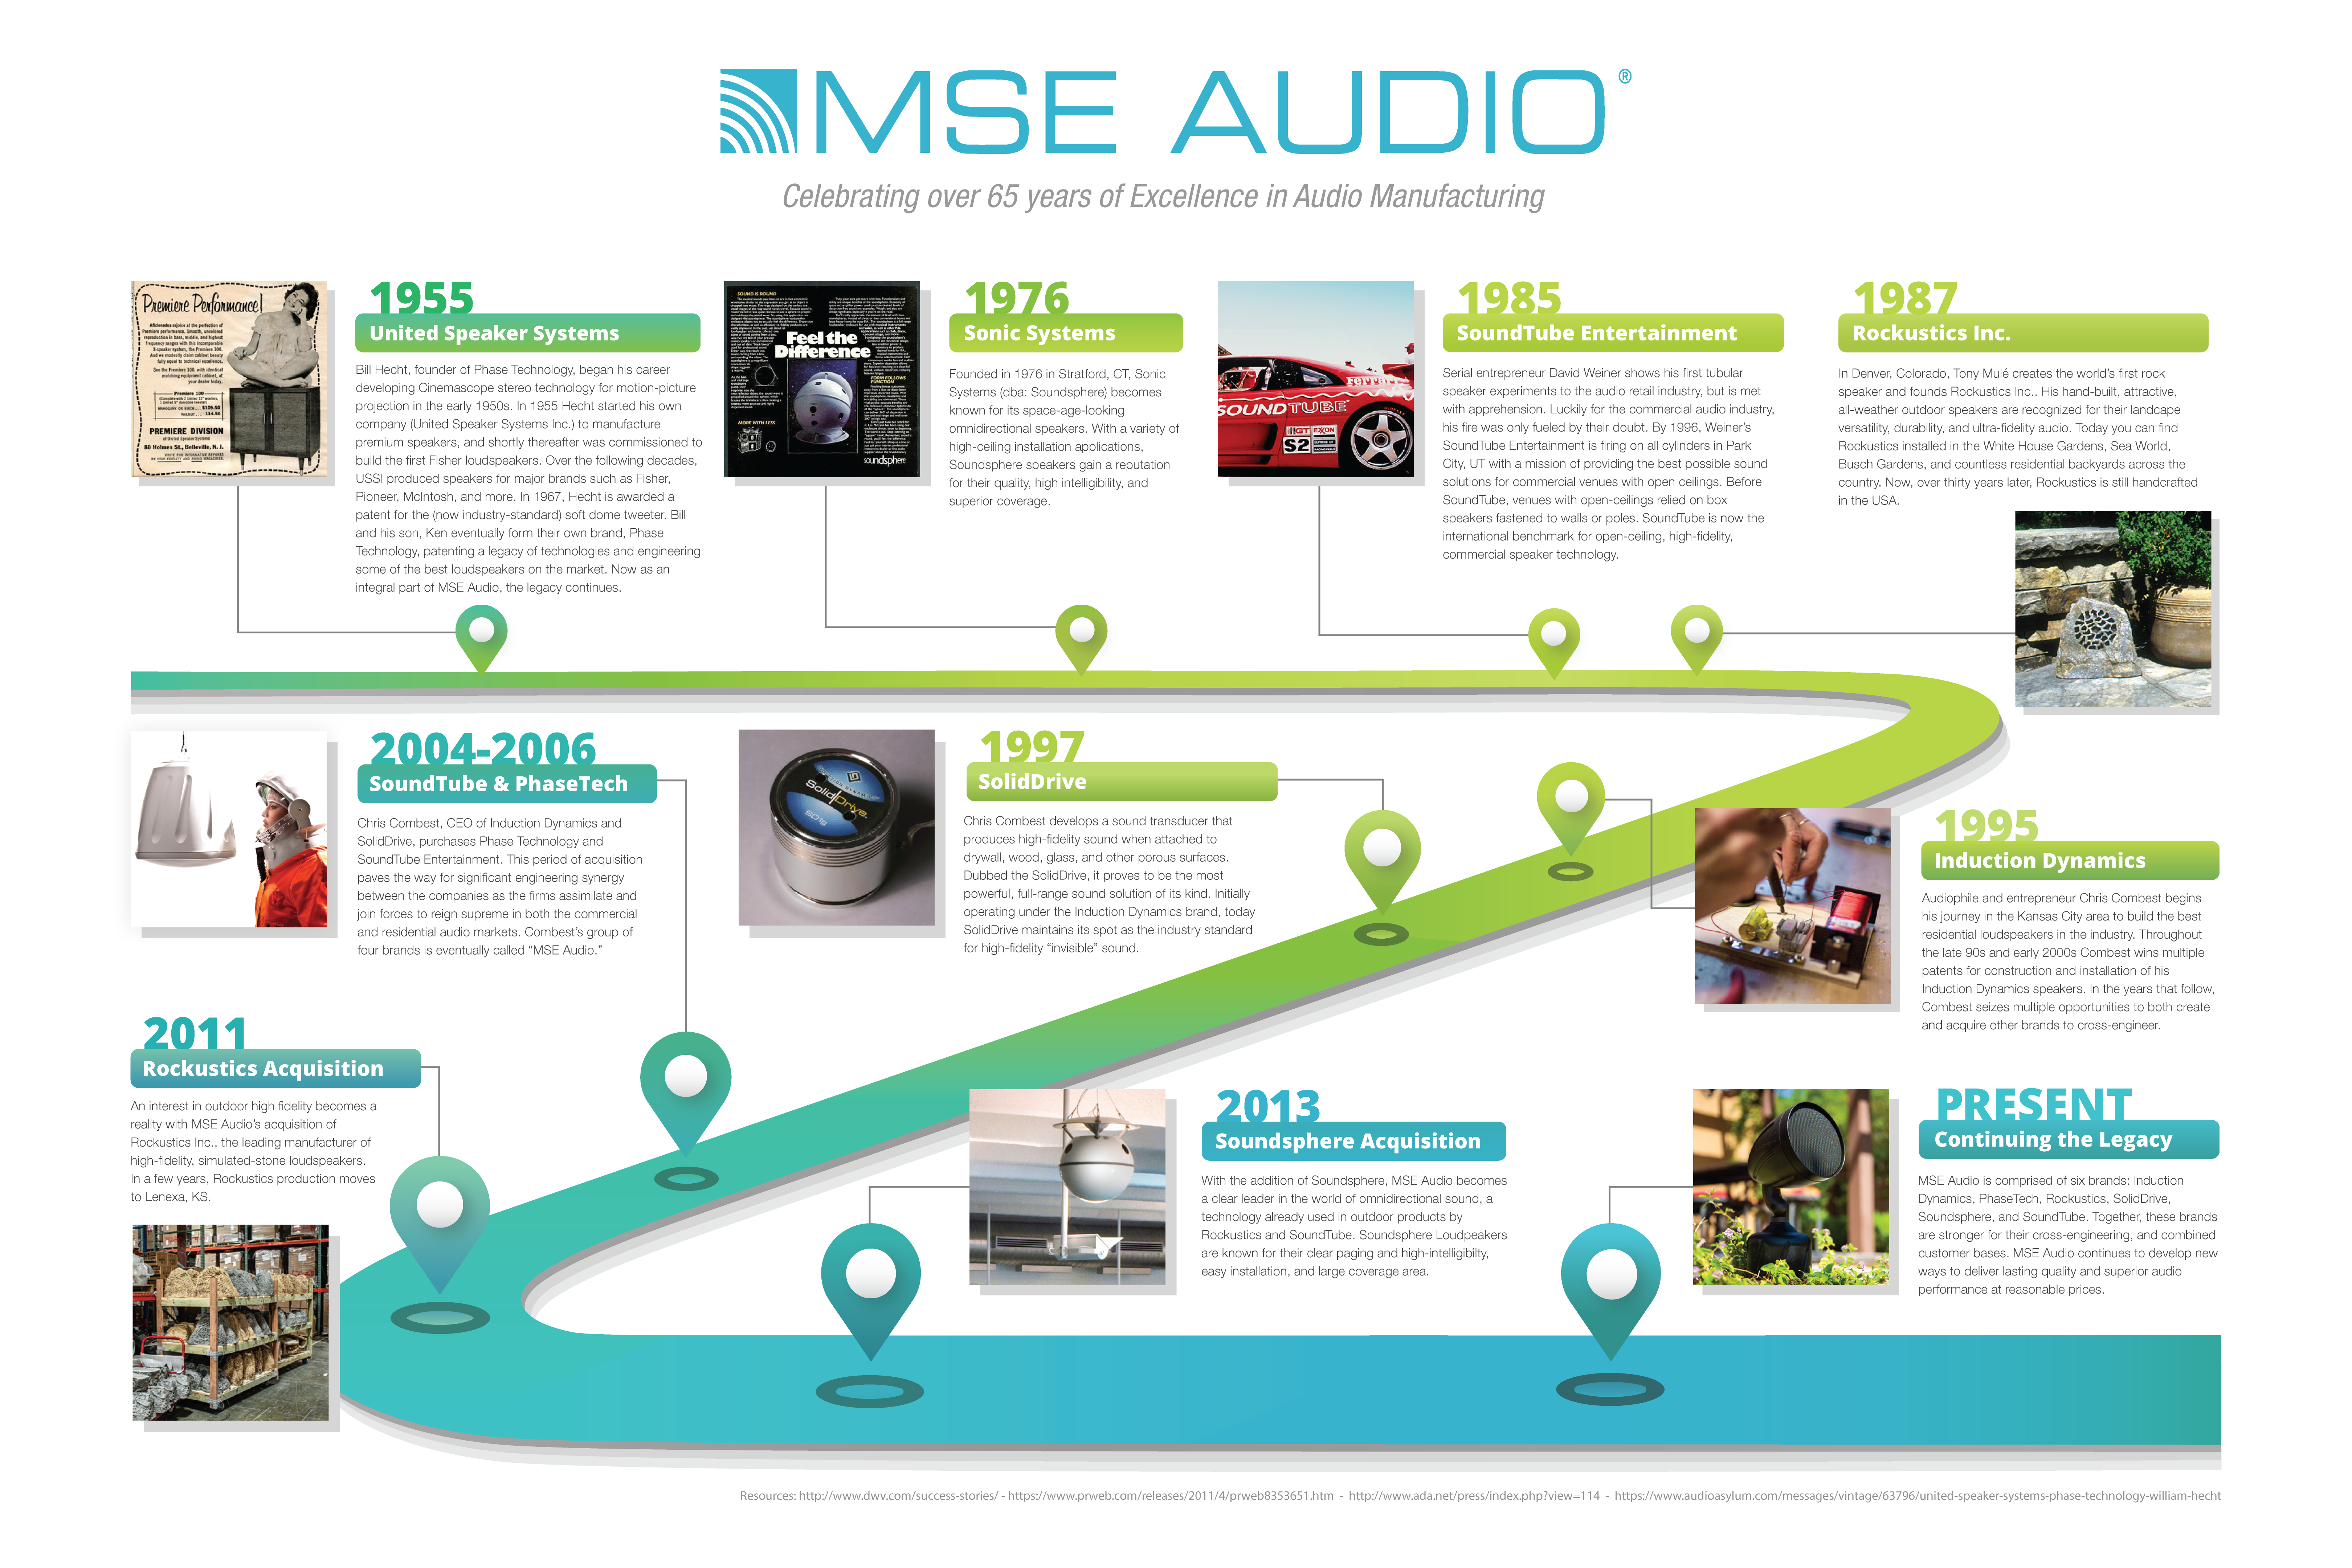 MSE Audio Timeline 1955-2020